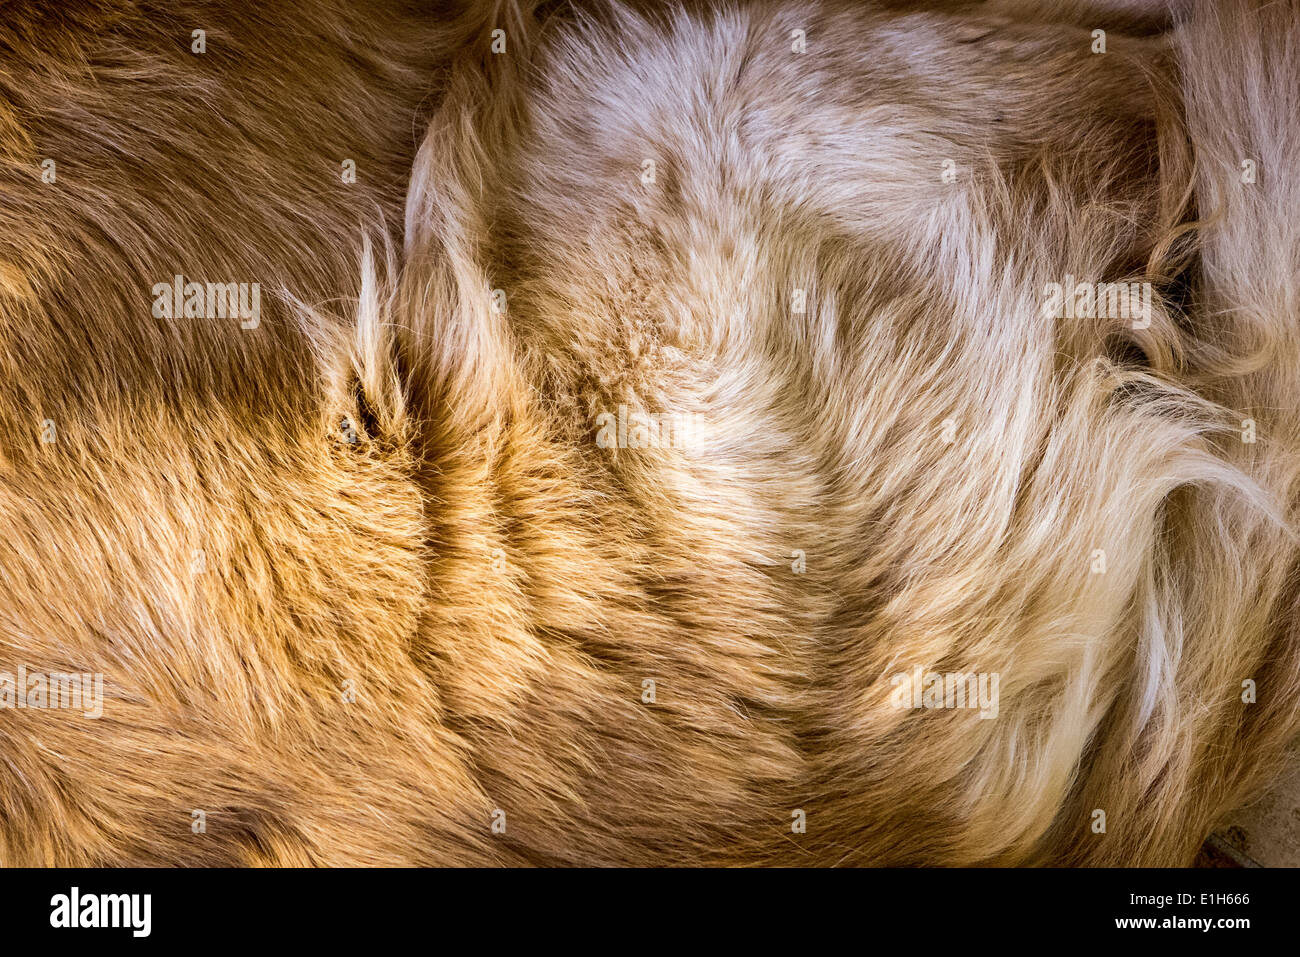 Abstract of dog fur coat - Stock Image